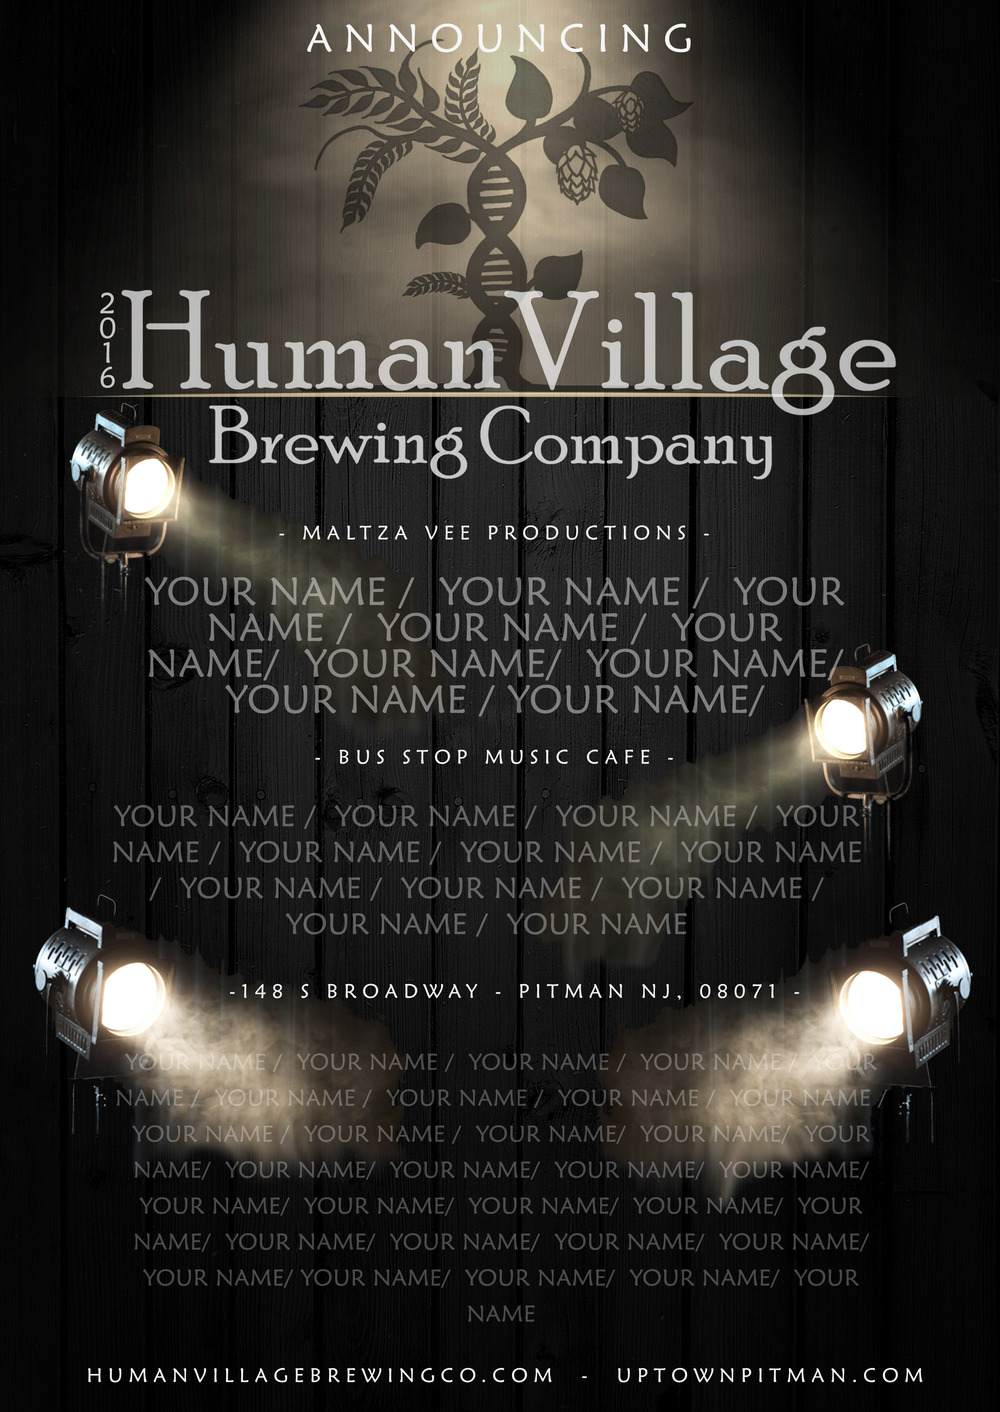 Become a headline on our custom made tribute poster! This will hang in the brewery for all to see who are our biggest supporters!